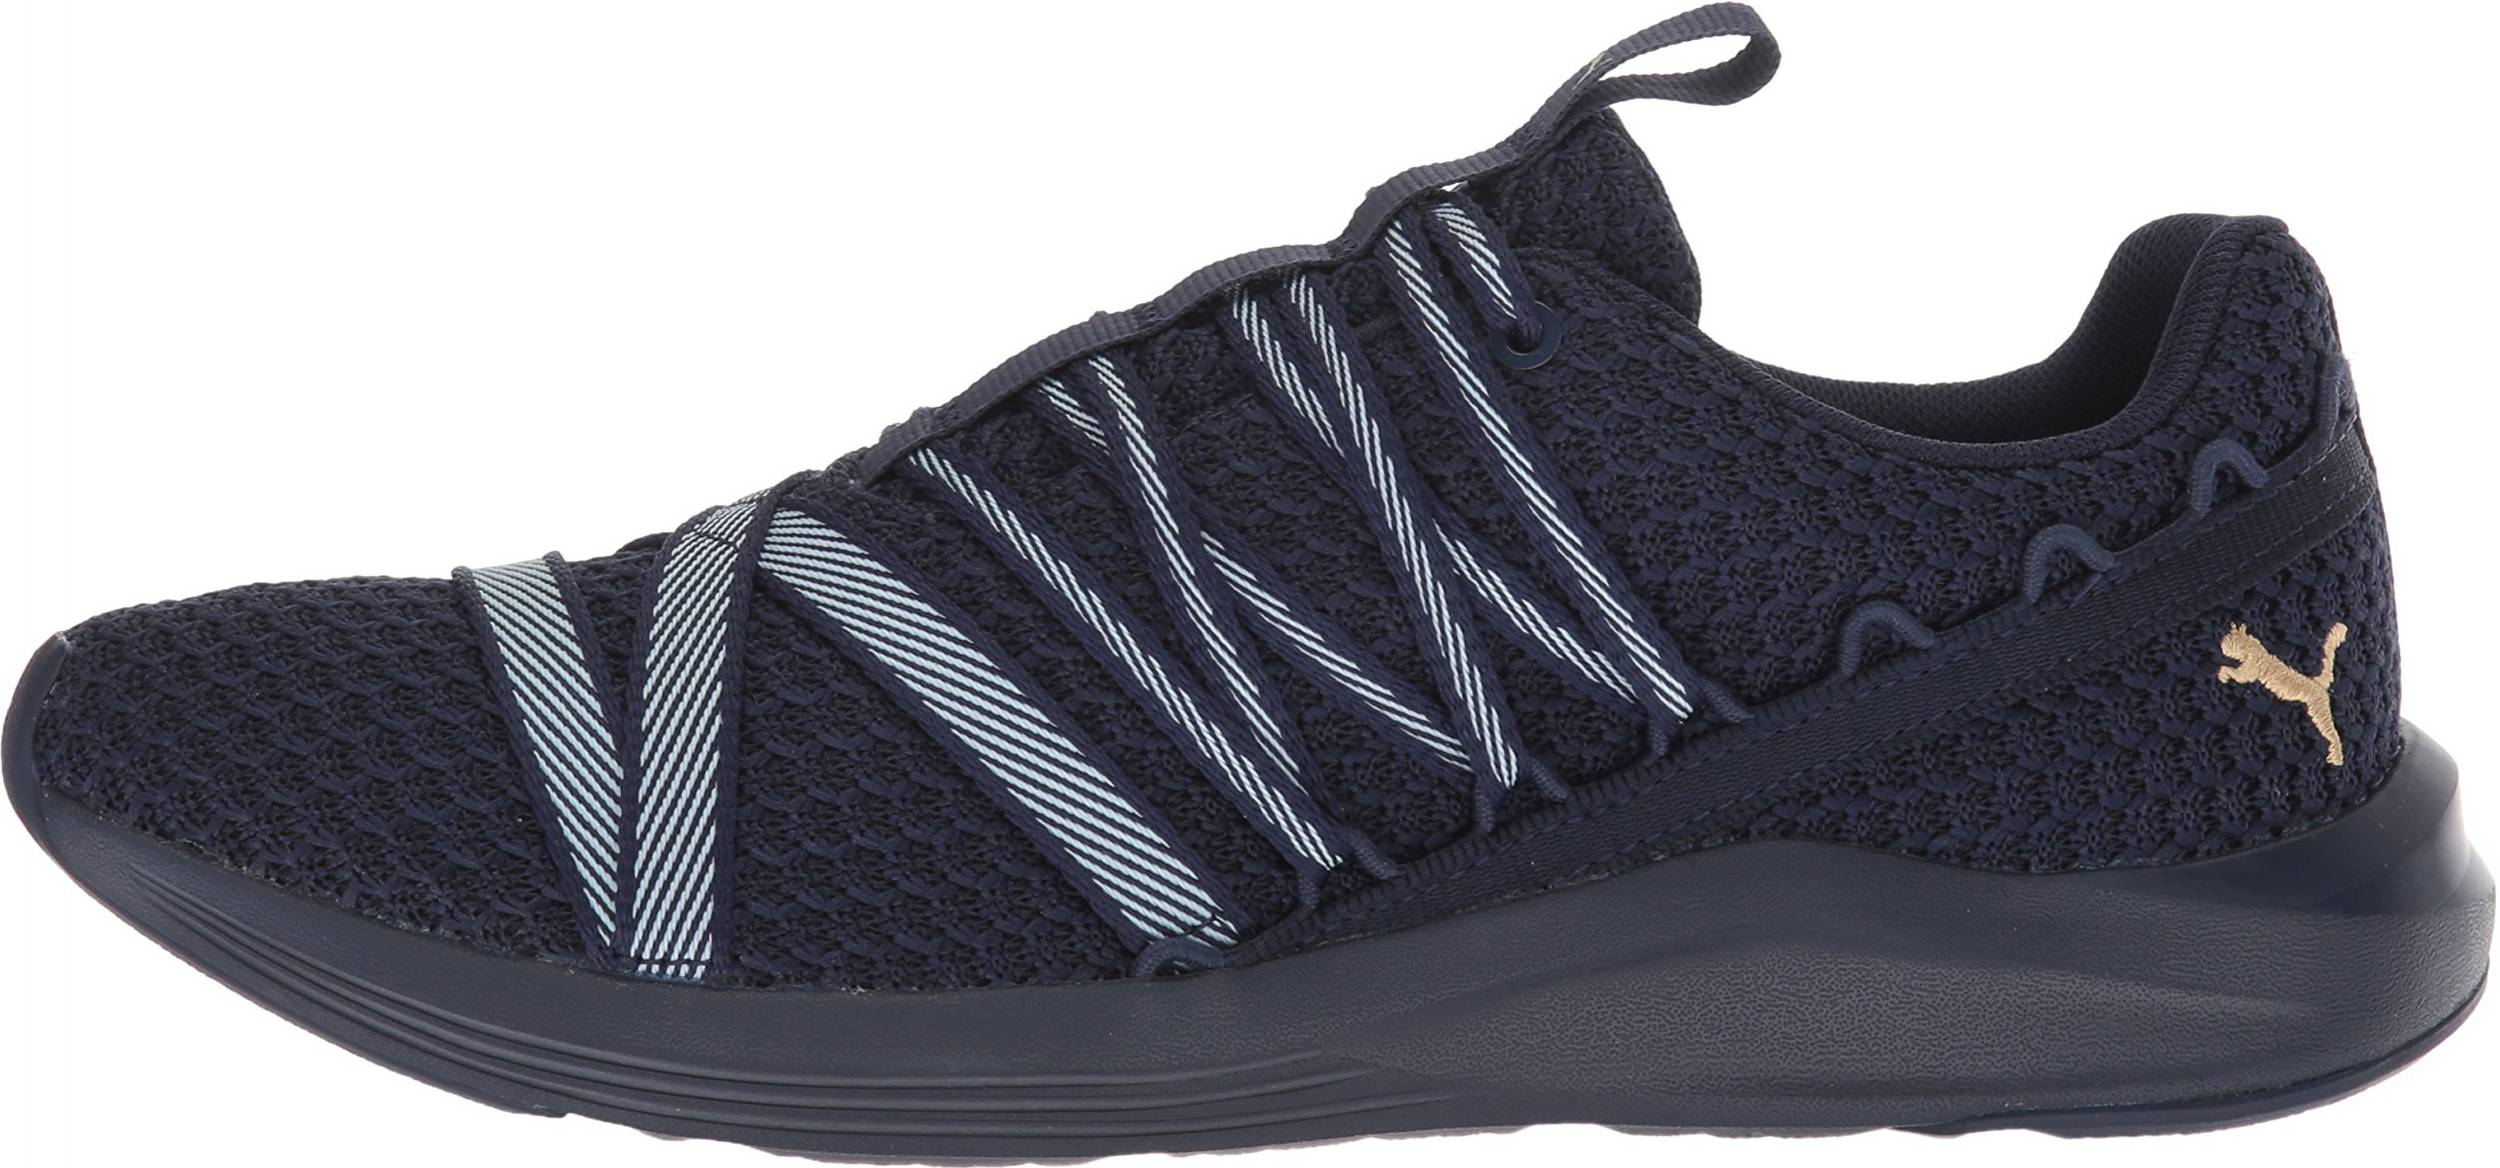 Only $43 + Review of Puma Prowl Alt 2